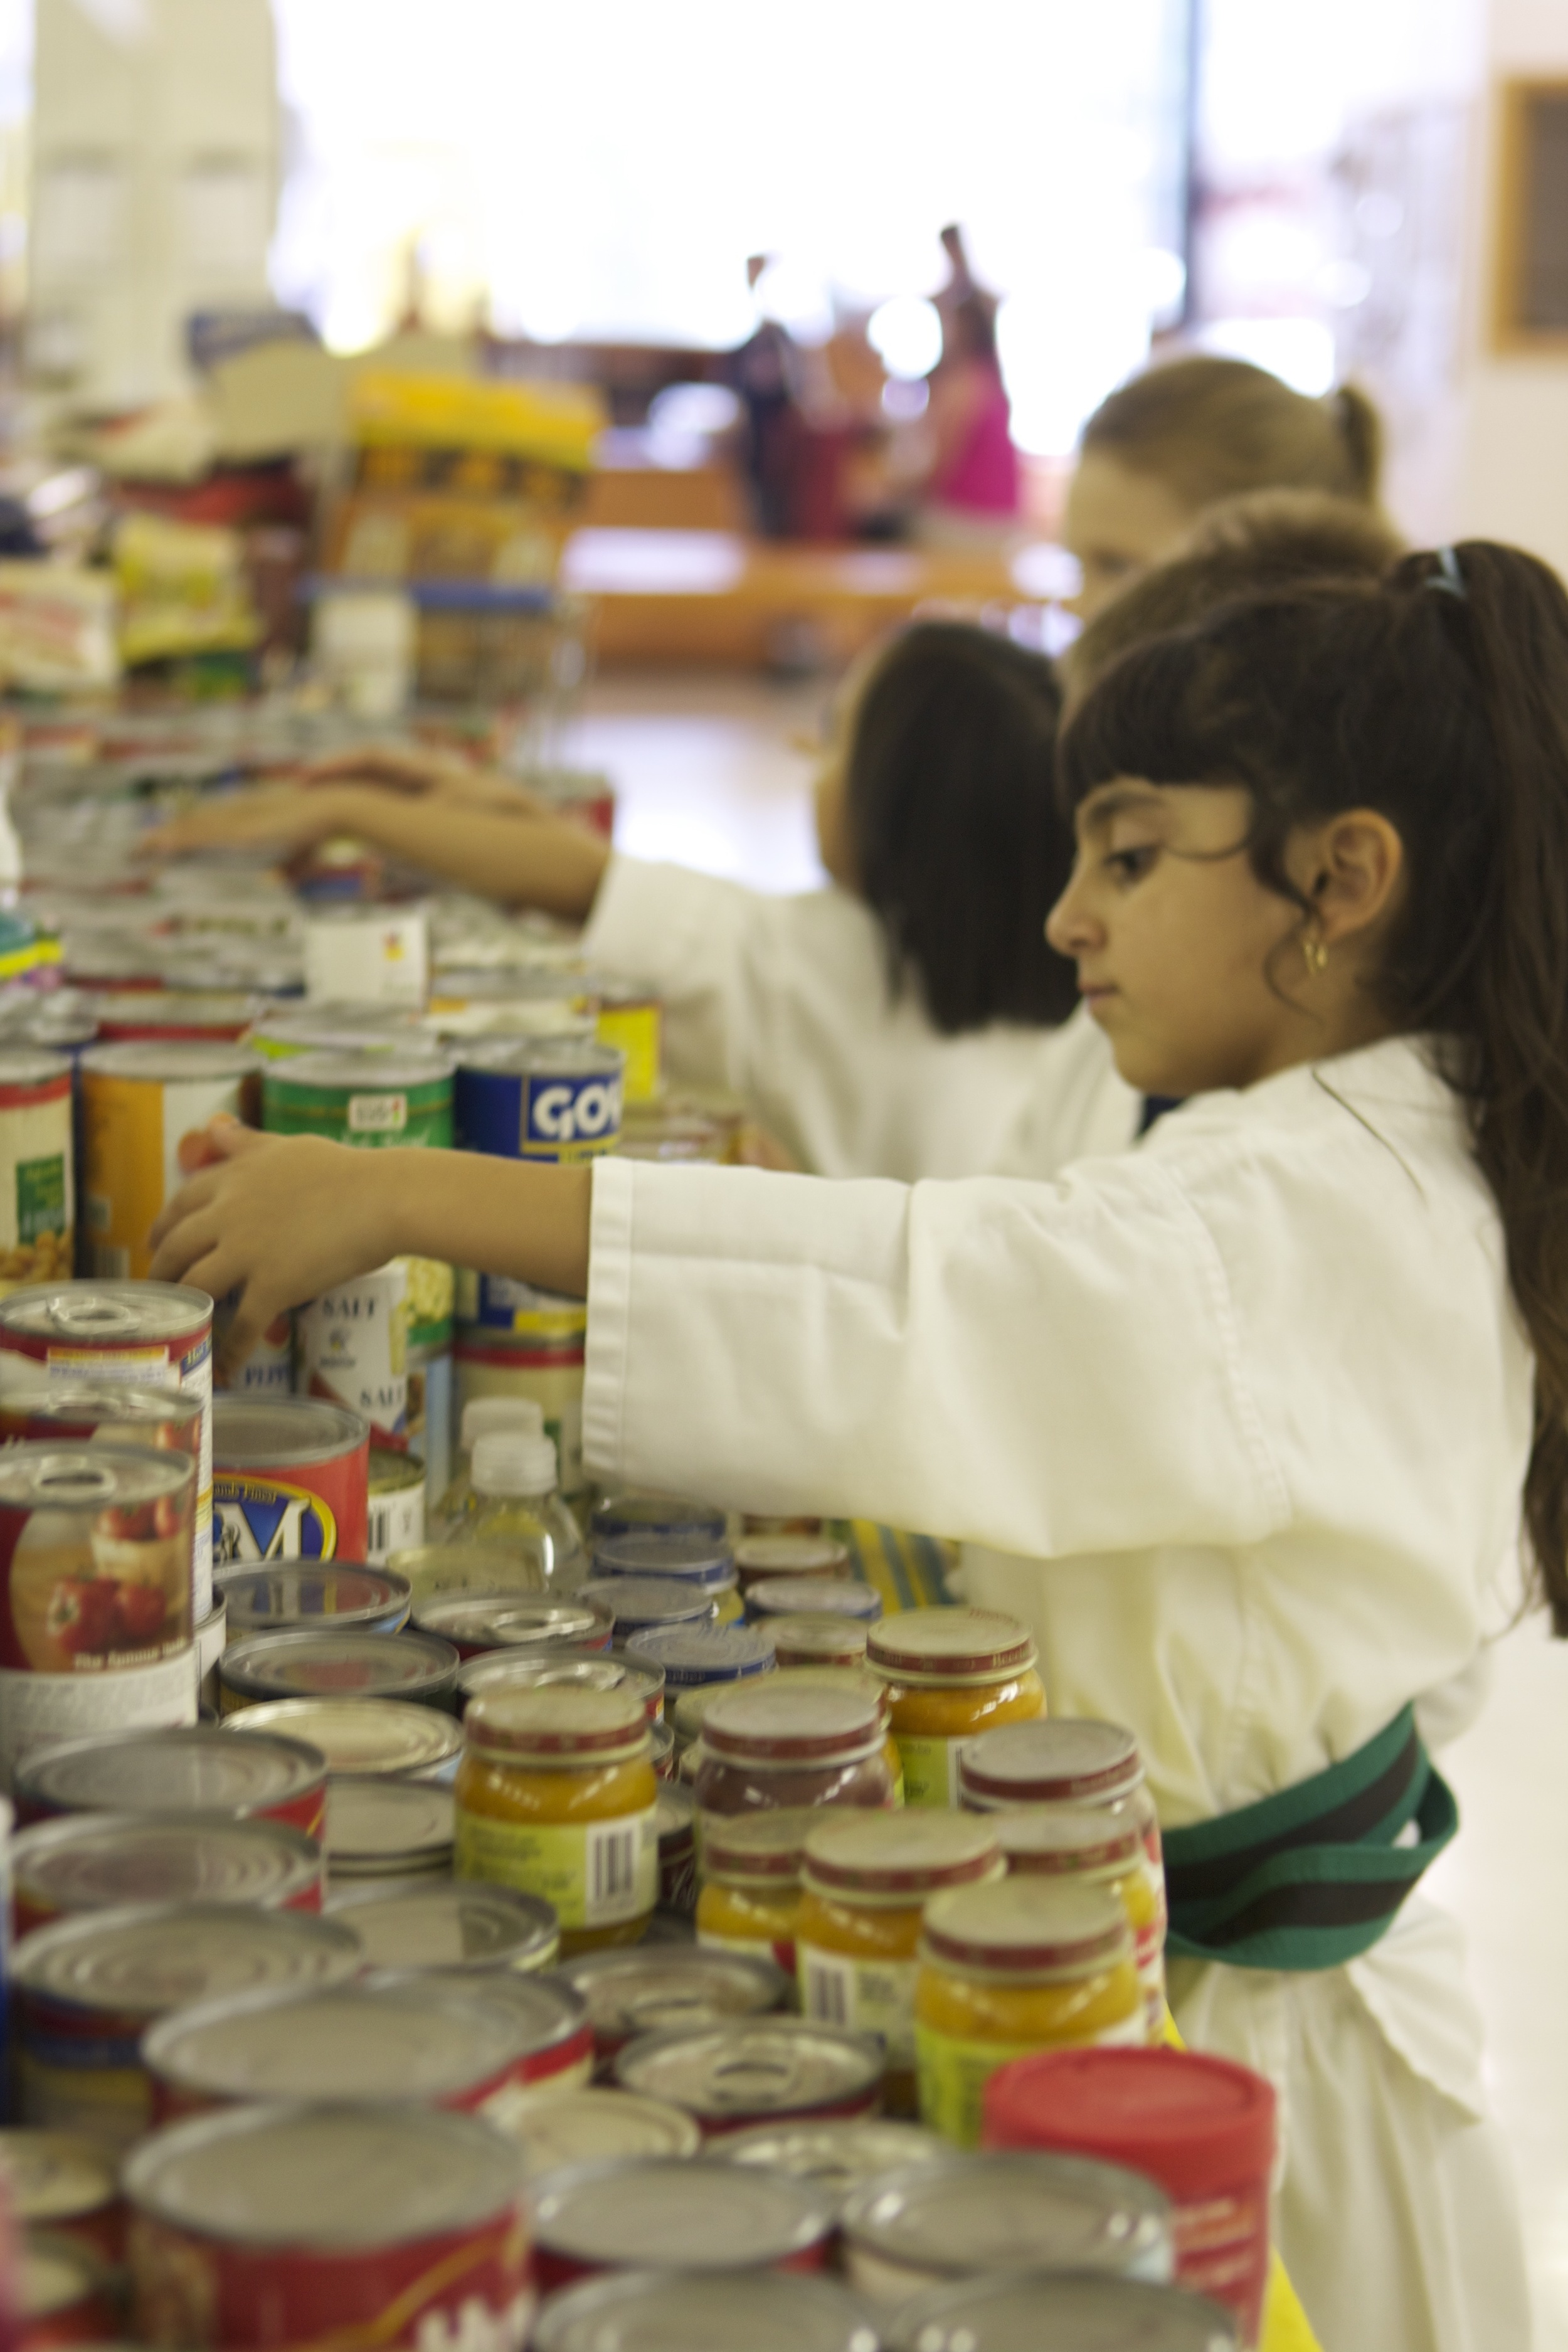 thedojo-food-drive-martial-arts-karate-kids-doing-community-service-in-rutherford-nj_14667886061_o.jpg